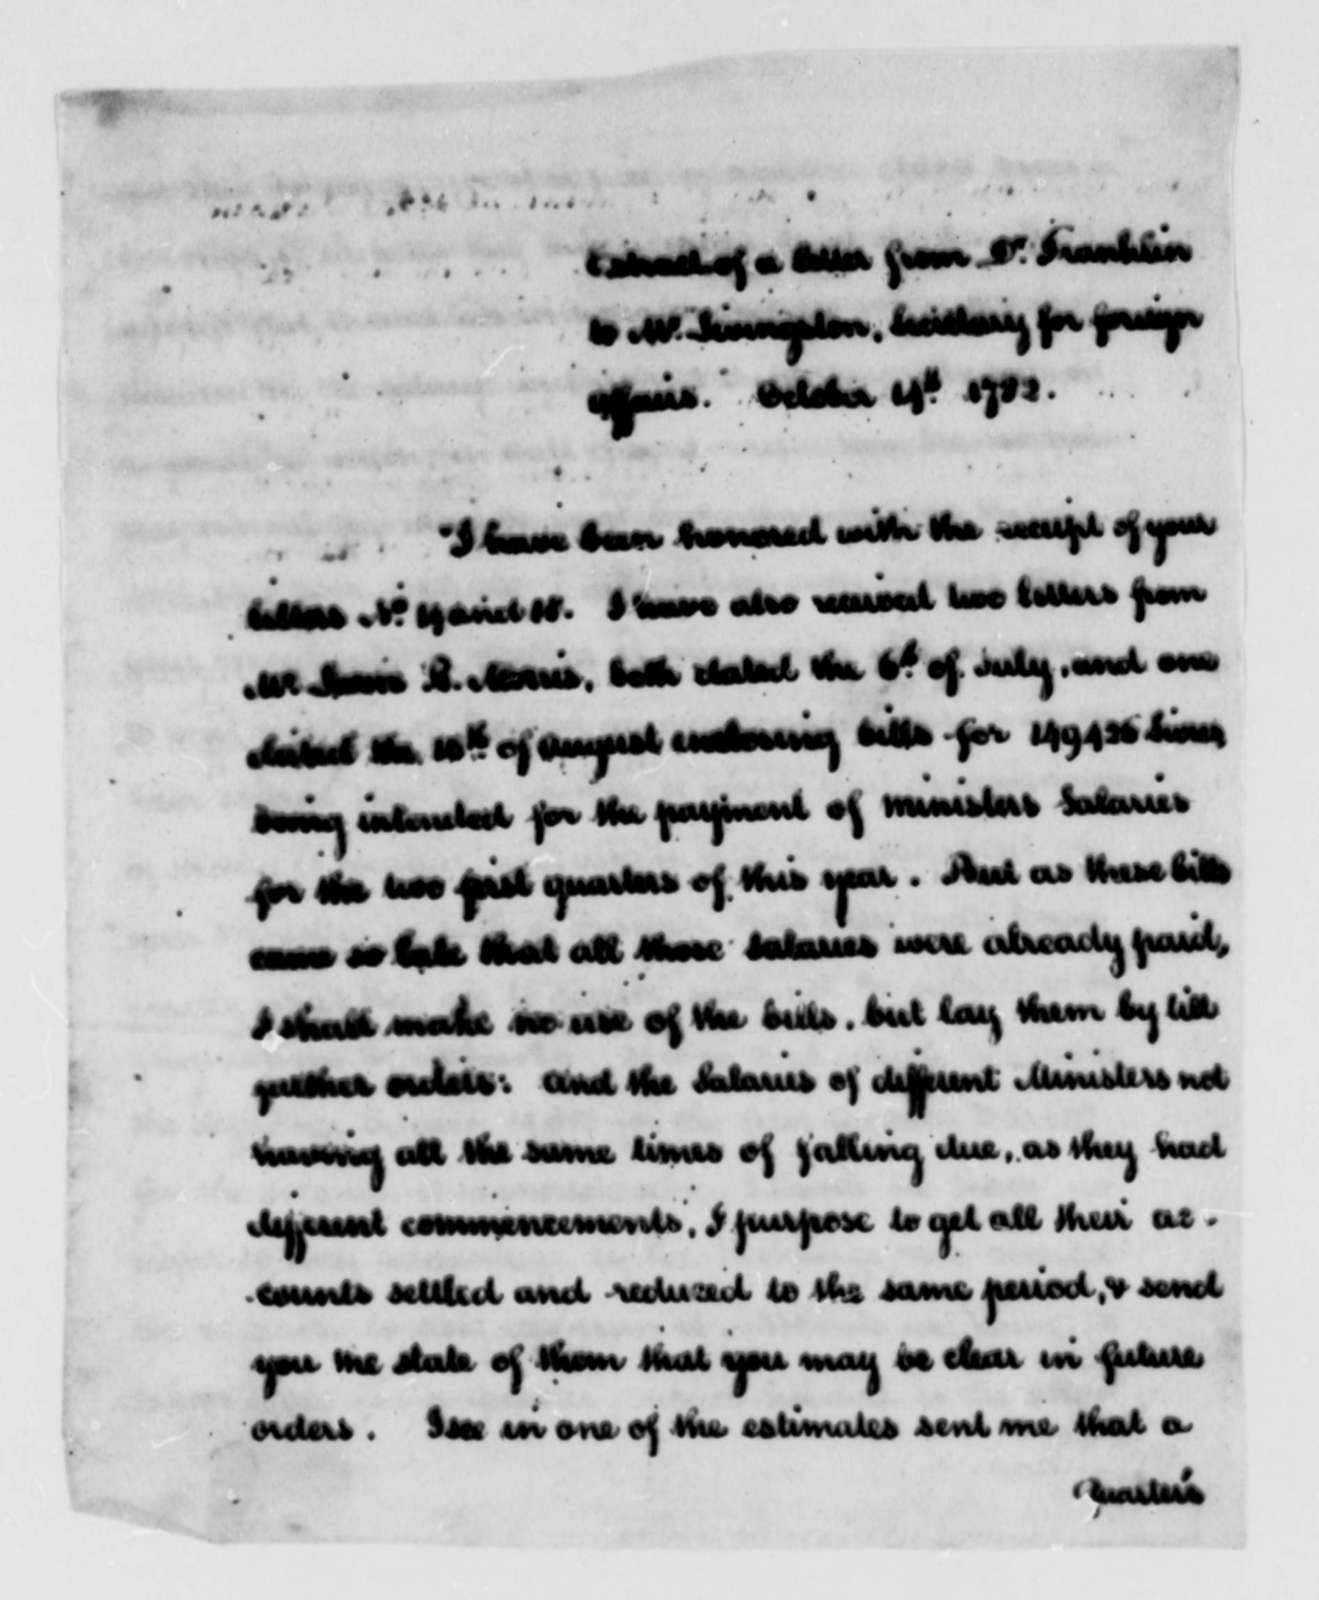 Benjamin Franklin to Robert R. Livingston, October 14, 1782, Extract and Copy